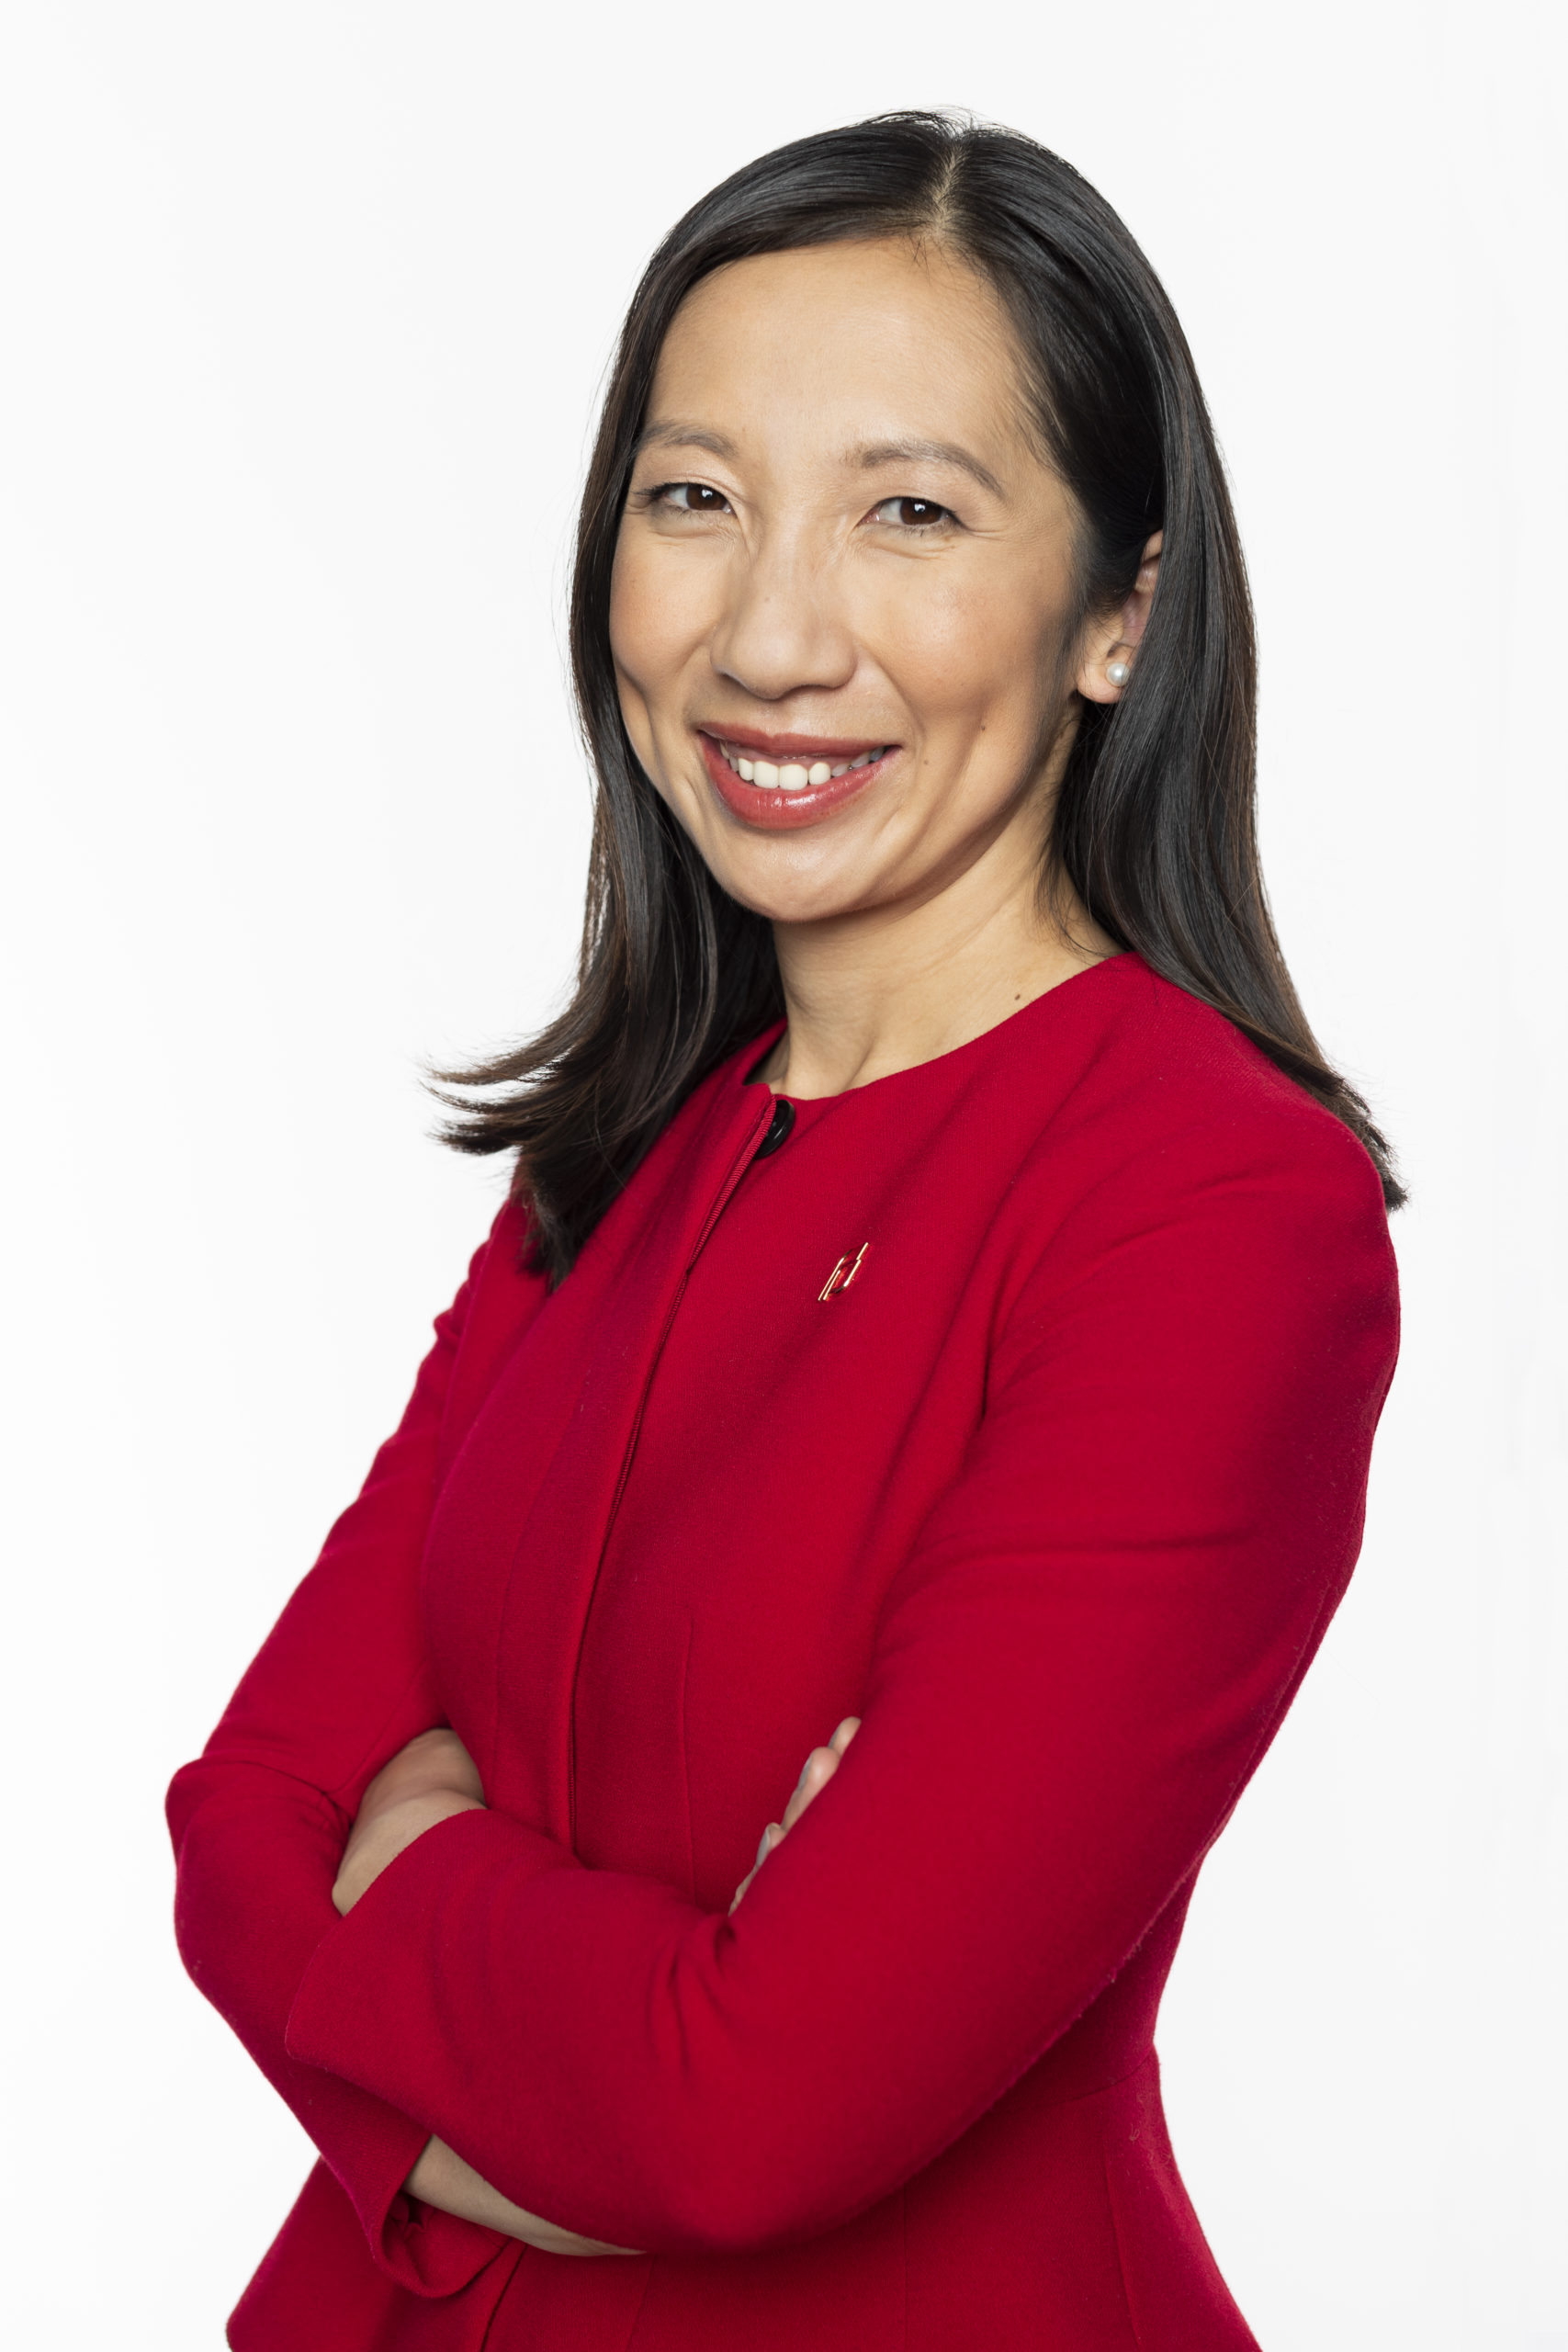 Leana S. Wen, MD, MSc. former President/CEO of the Planned Parenthood Federation of America